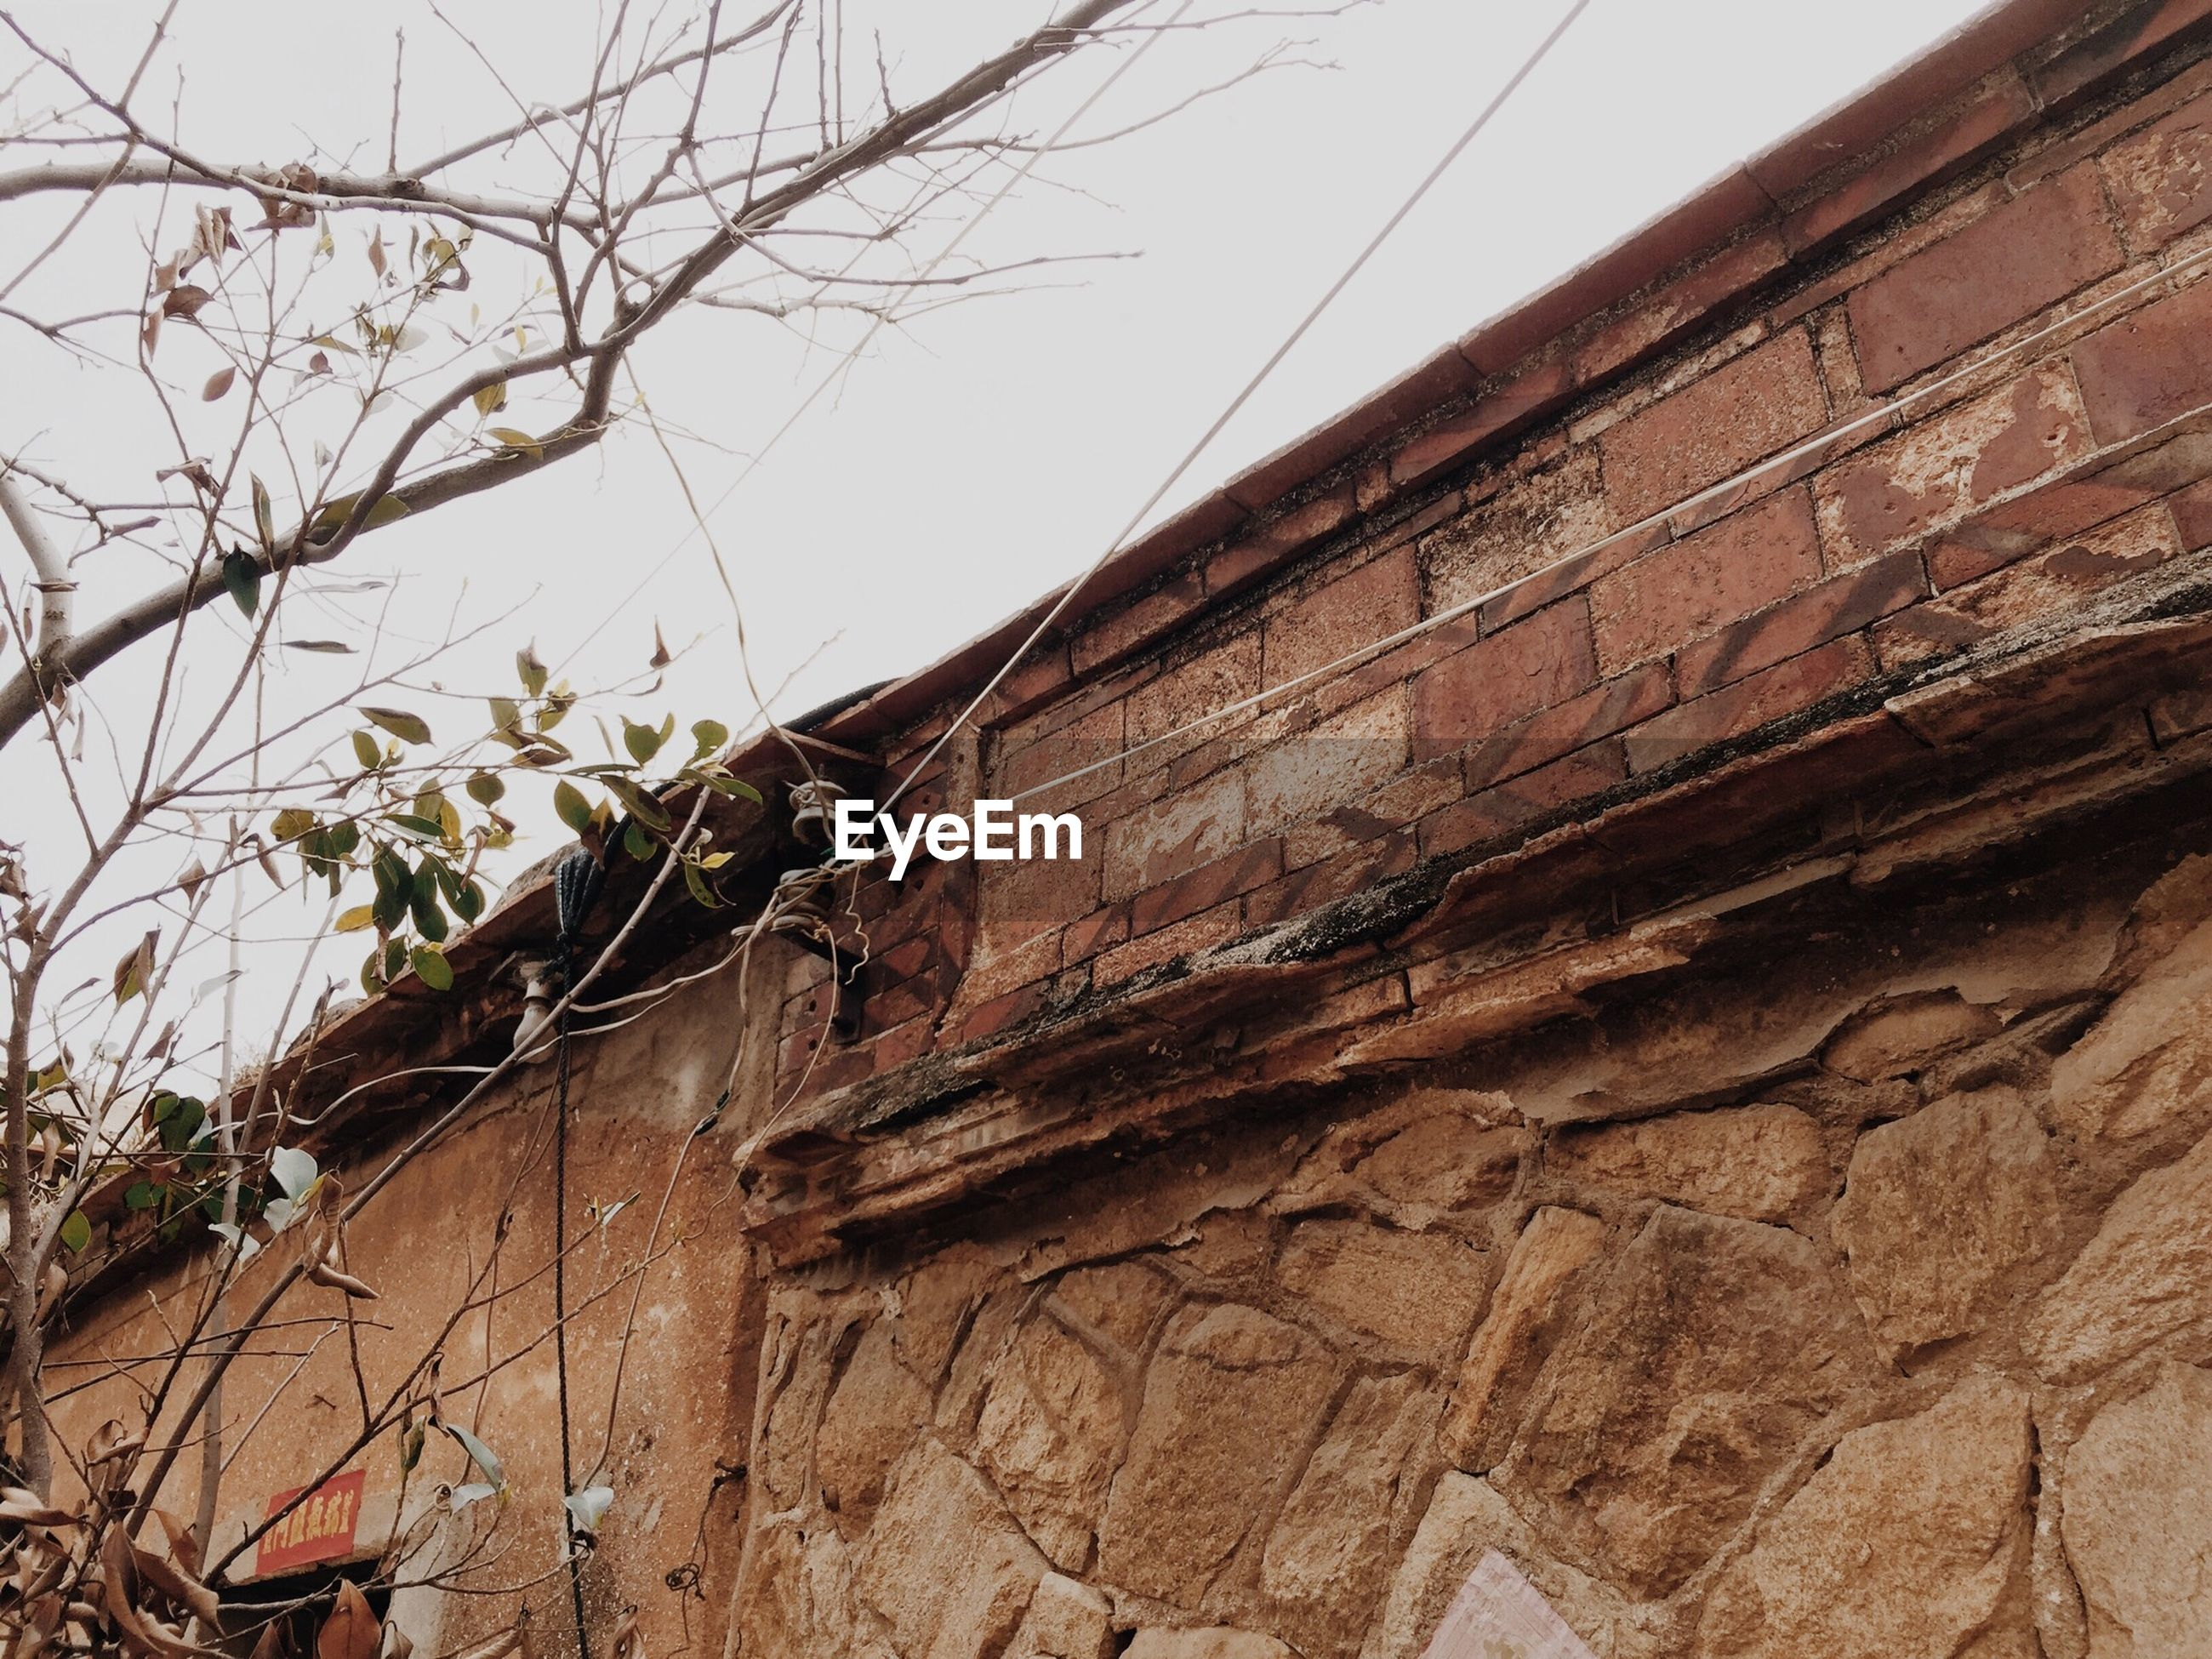 architecture, built structure, building exterior, low angle view, house, clear sky, residential structure, wall - building feature, tree, plant, growth, wall, sky, old, day, branch, outdoors, residential building, weathered, window